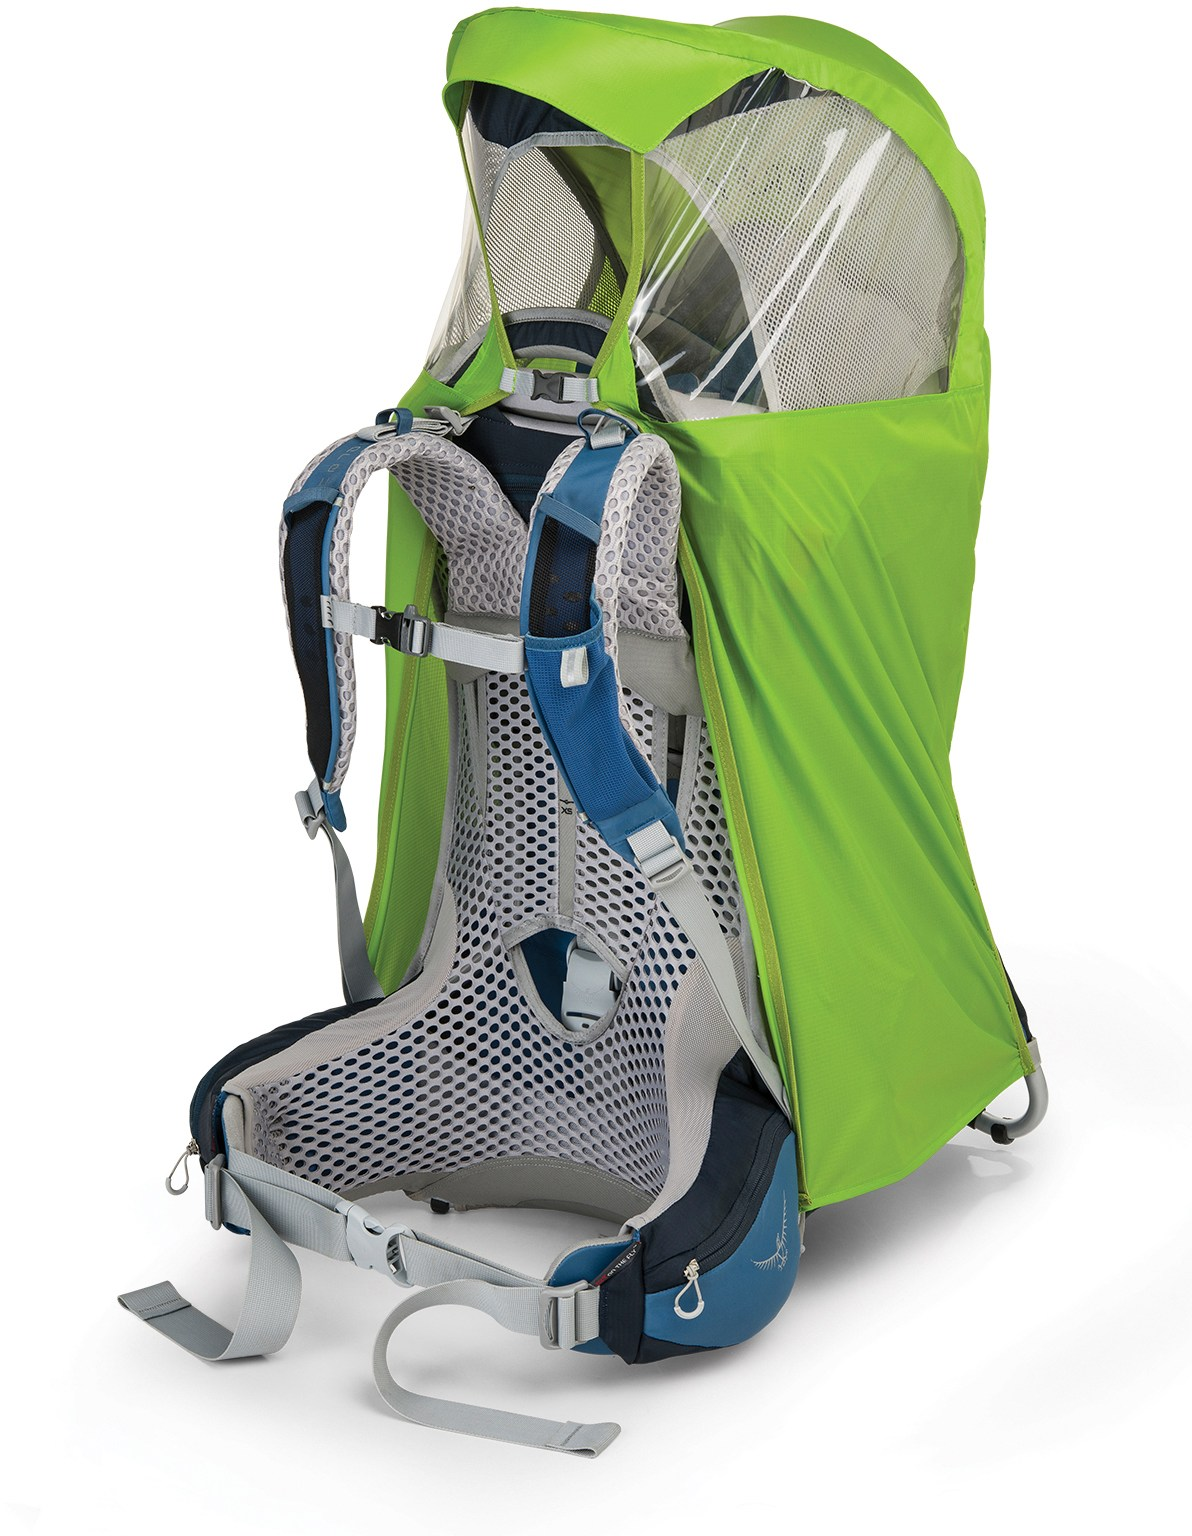 Osprey Poco AG Child Carrier Raincover